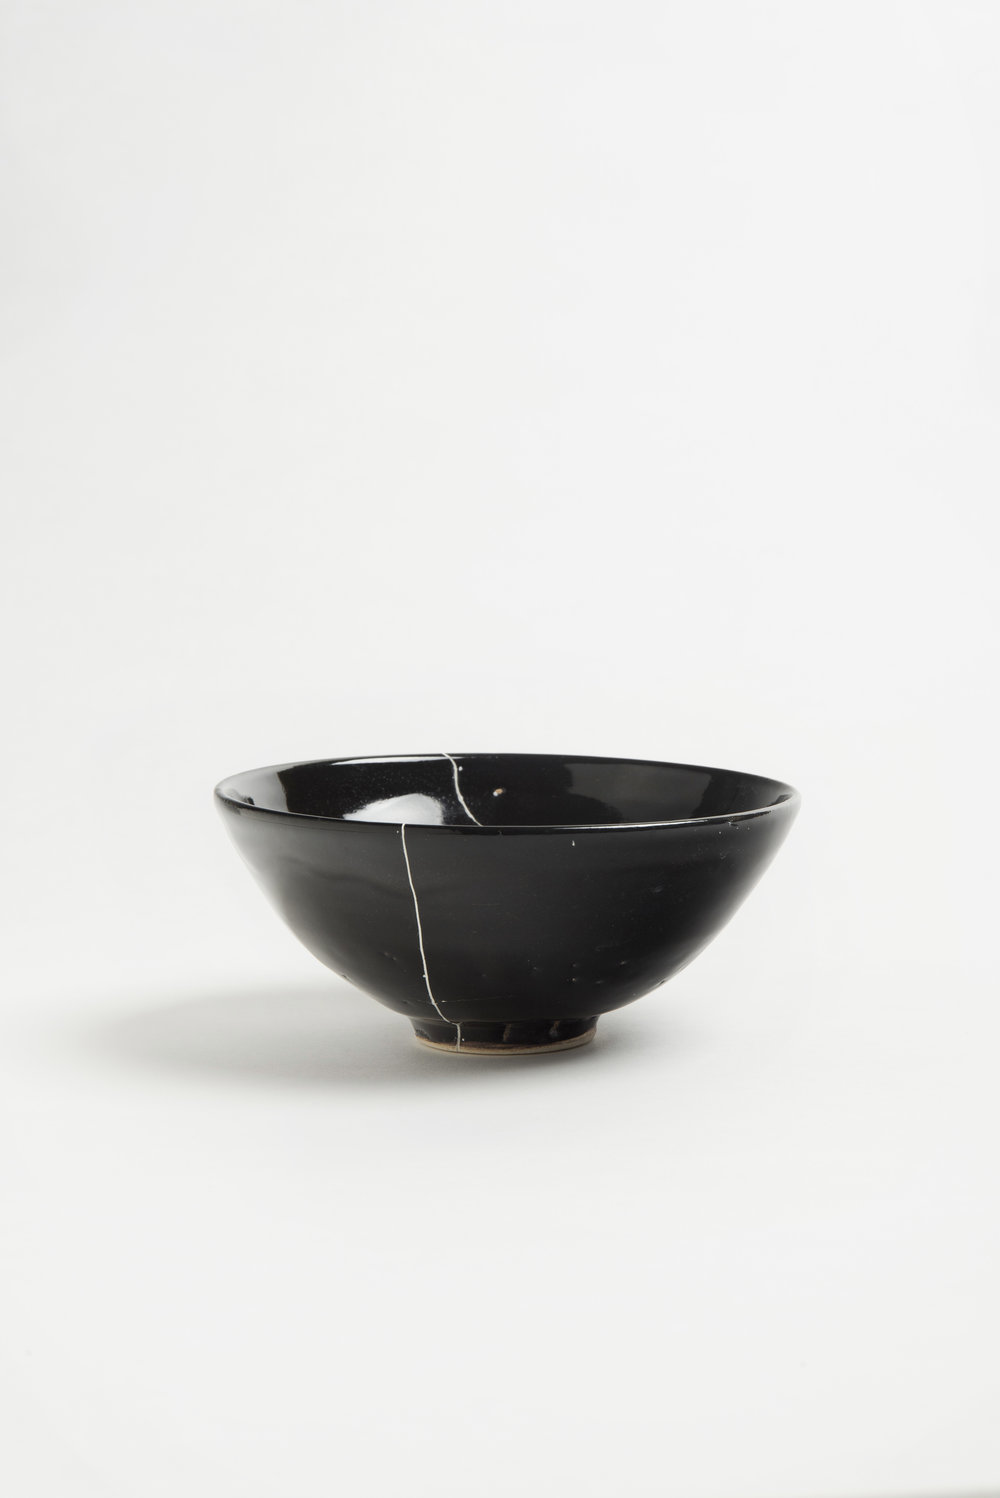 black-fracture-series-bowl-romy-northover-ceramics-the-garnered-44.jpg